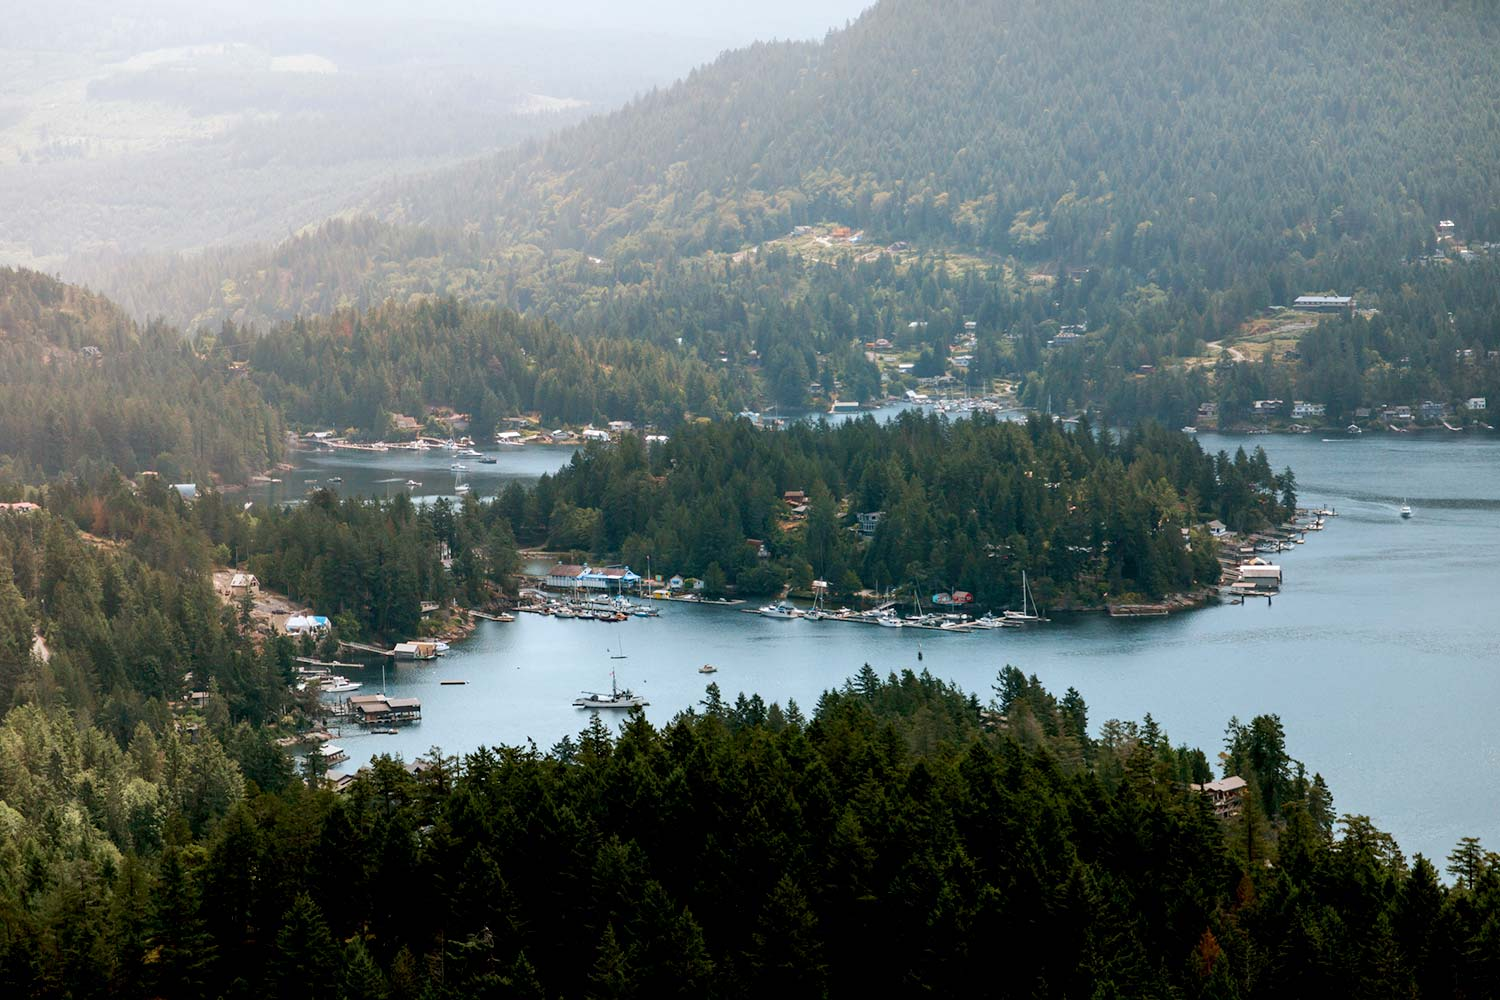 Aerial view of boats moored at John Henry's Marina in the Pender Harbour, and the surrounding residents on the Sunshine Coast in Canada.